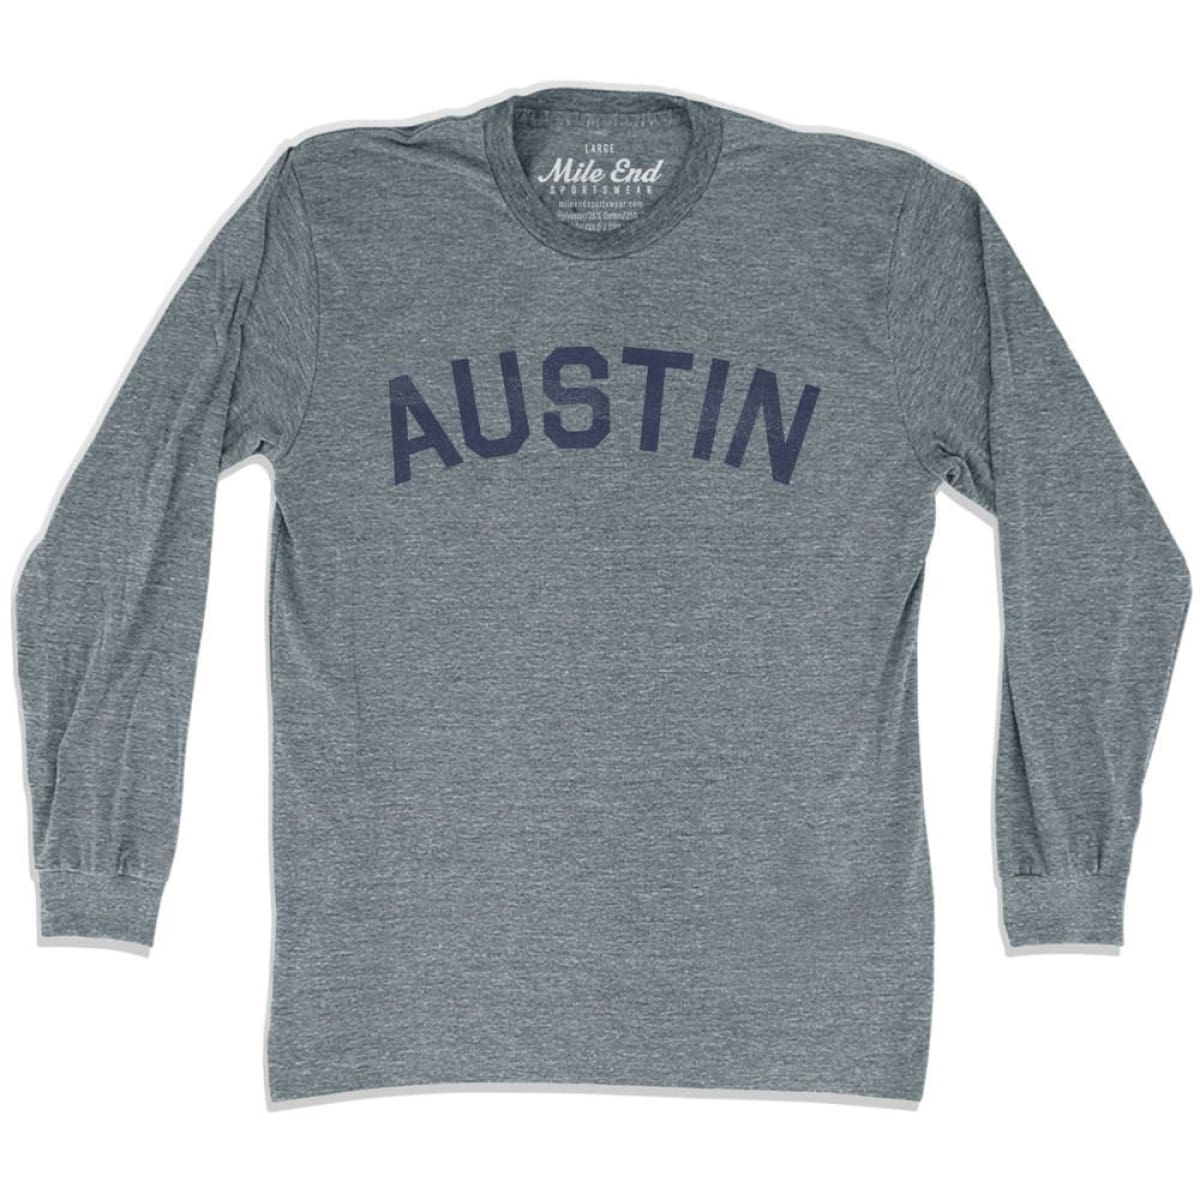 Austin City Vintage Long Sleeve T-Shirt - Athletic Grey / Adult X-Small - Mile End City